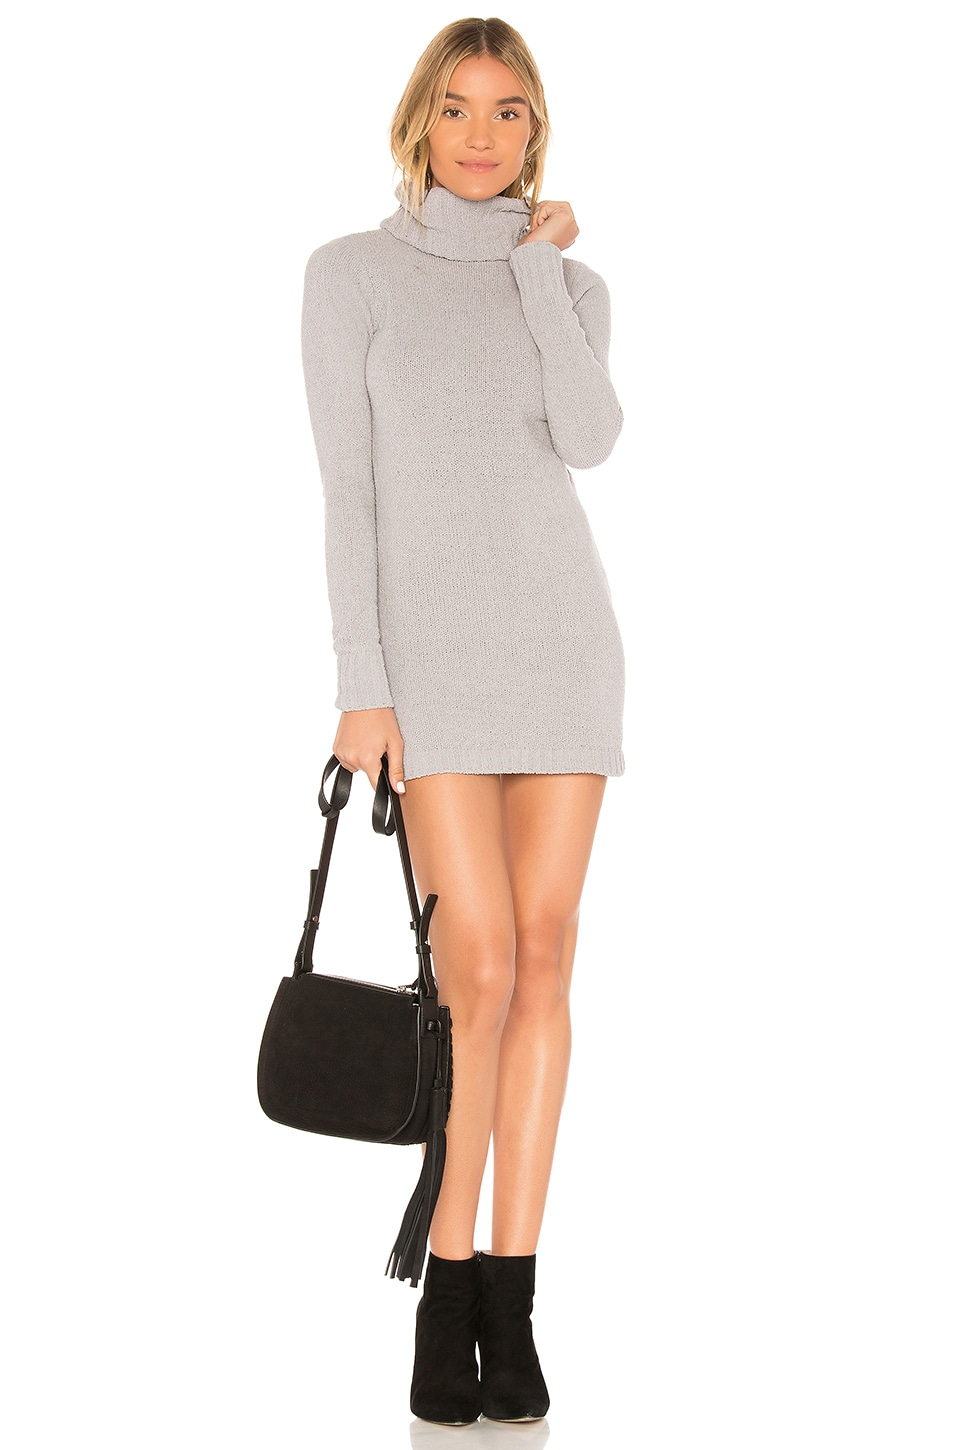 Lovers + Friends Colby Dress in Heather Grey